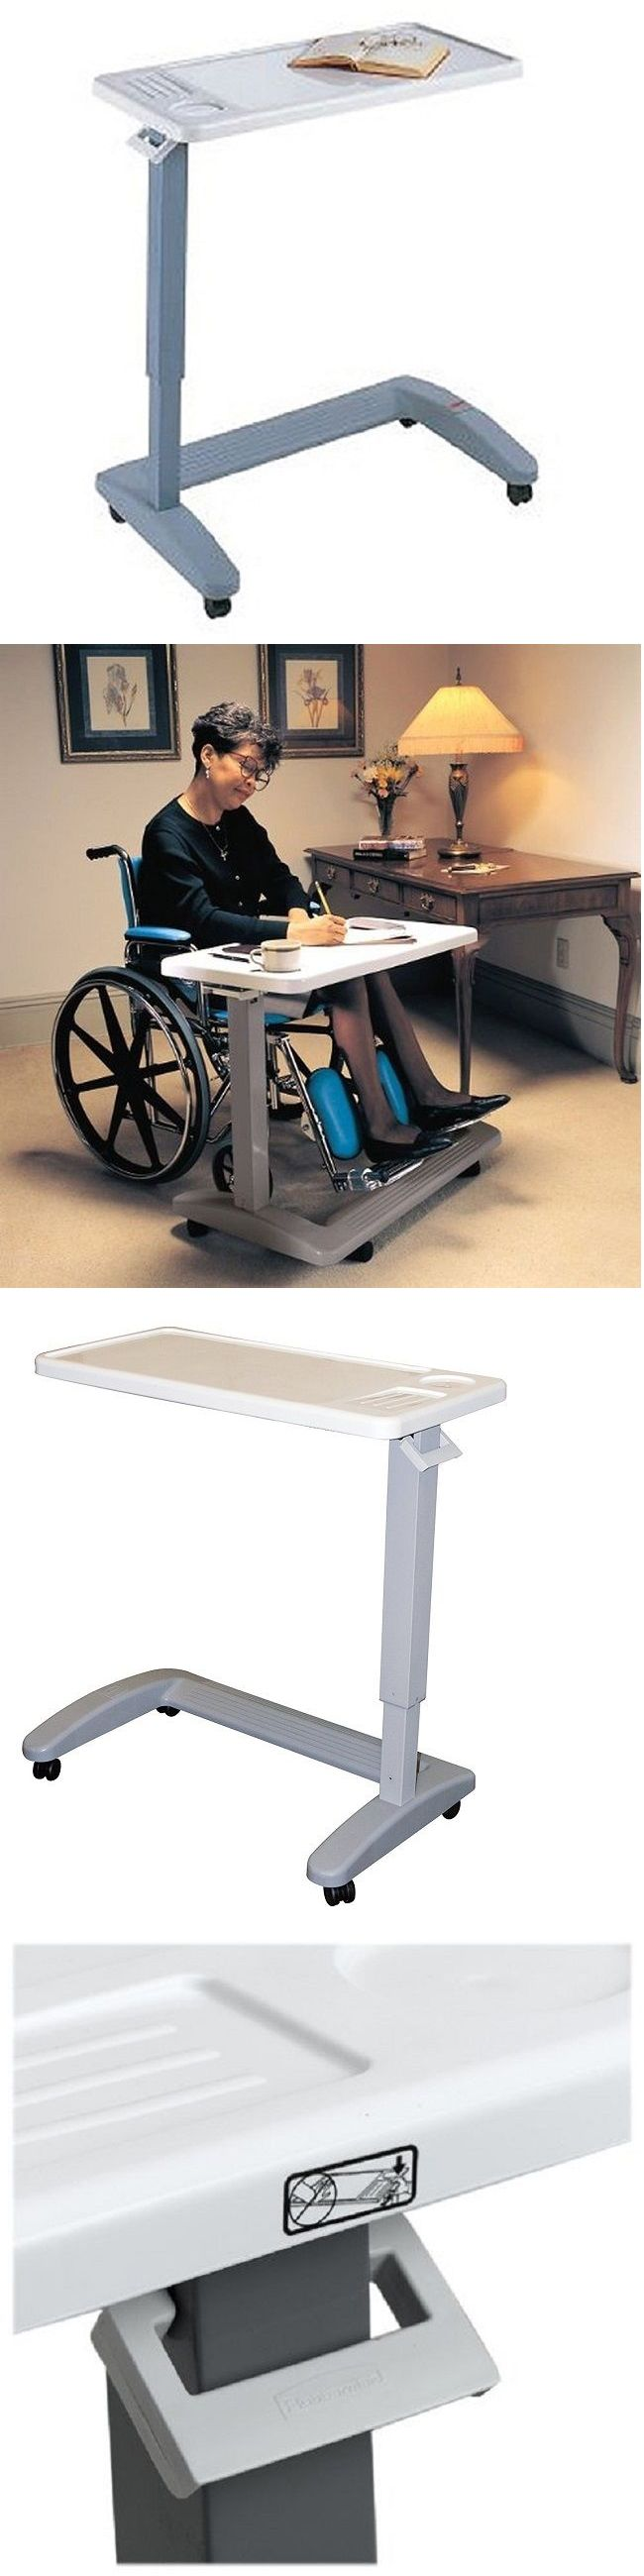 Overbed table food tray non tilt top bed hospital adjustable rolling - Bed And Chair Tables Heavy Duty Overbed Table Adjustable Medical Hospital Top Rolling Senior Wheels